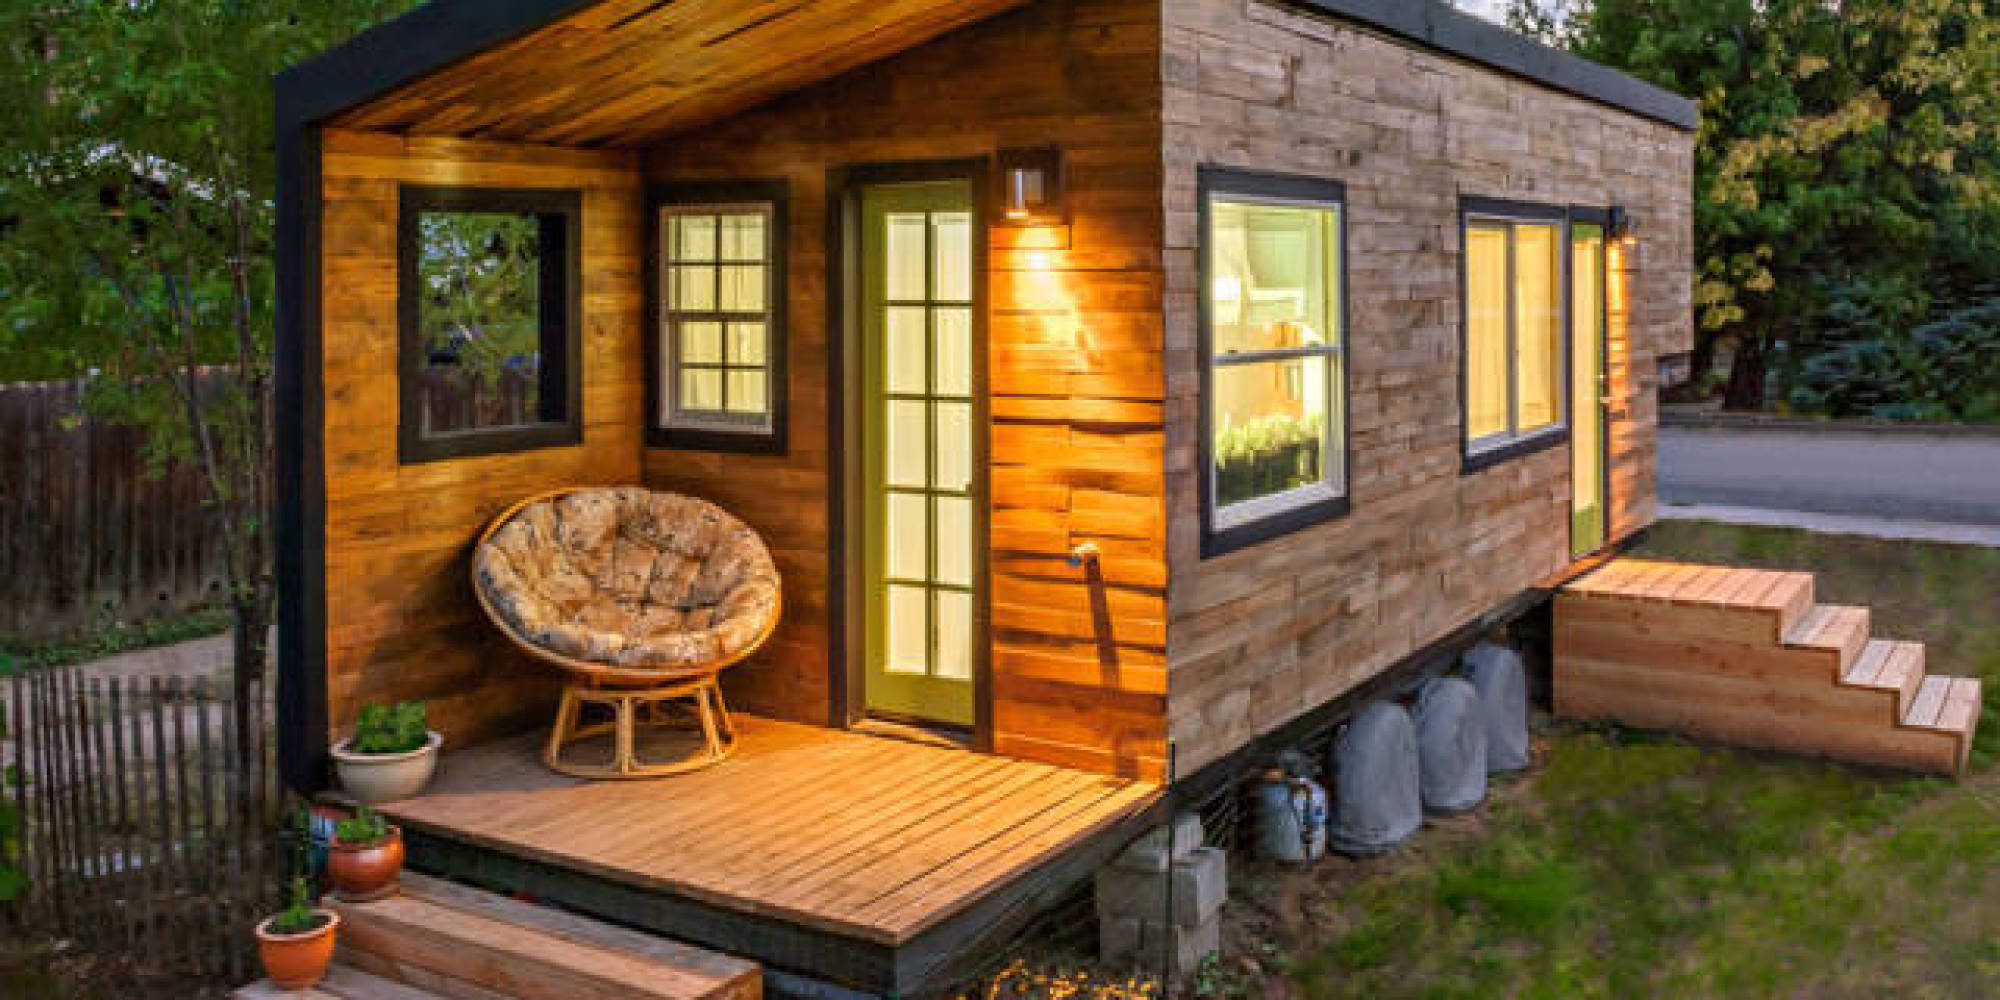 12 of the most impressive tiny houses we 39 ve ever seen huffpost. Black Bedroom Furniture Sets. Home Design Ideas